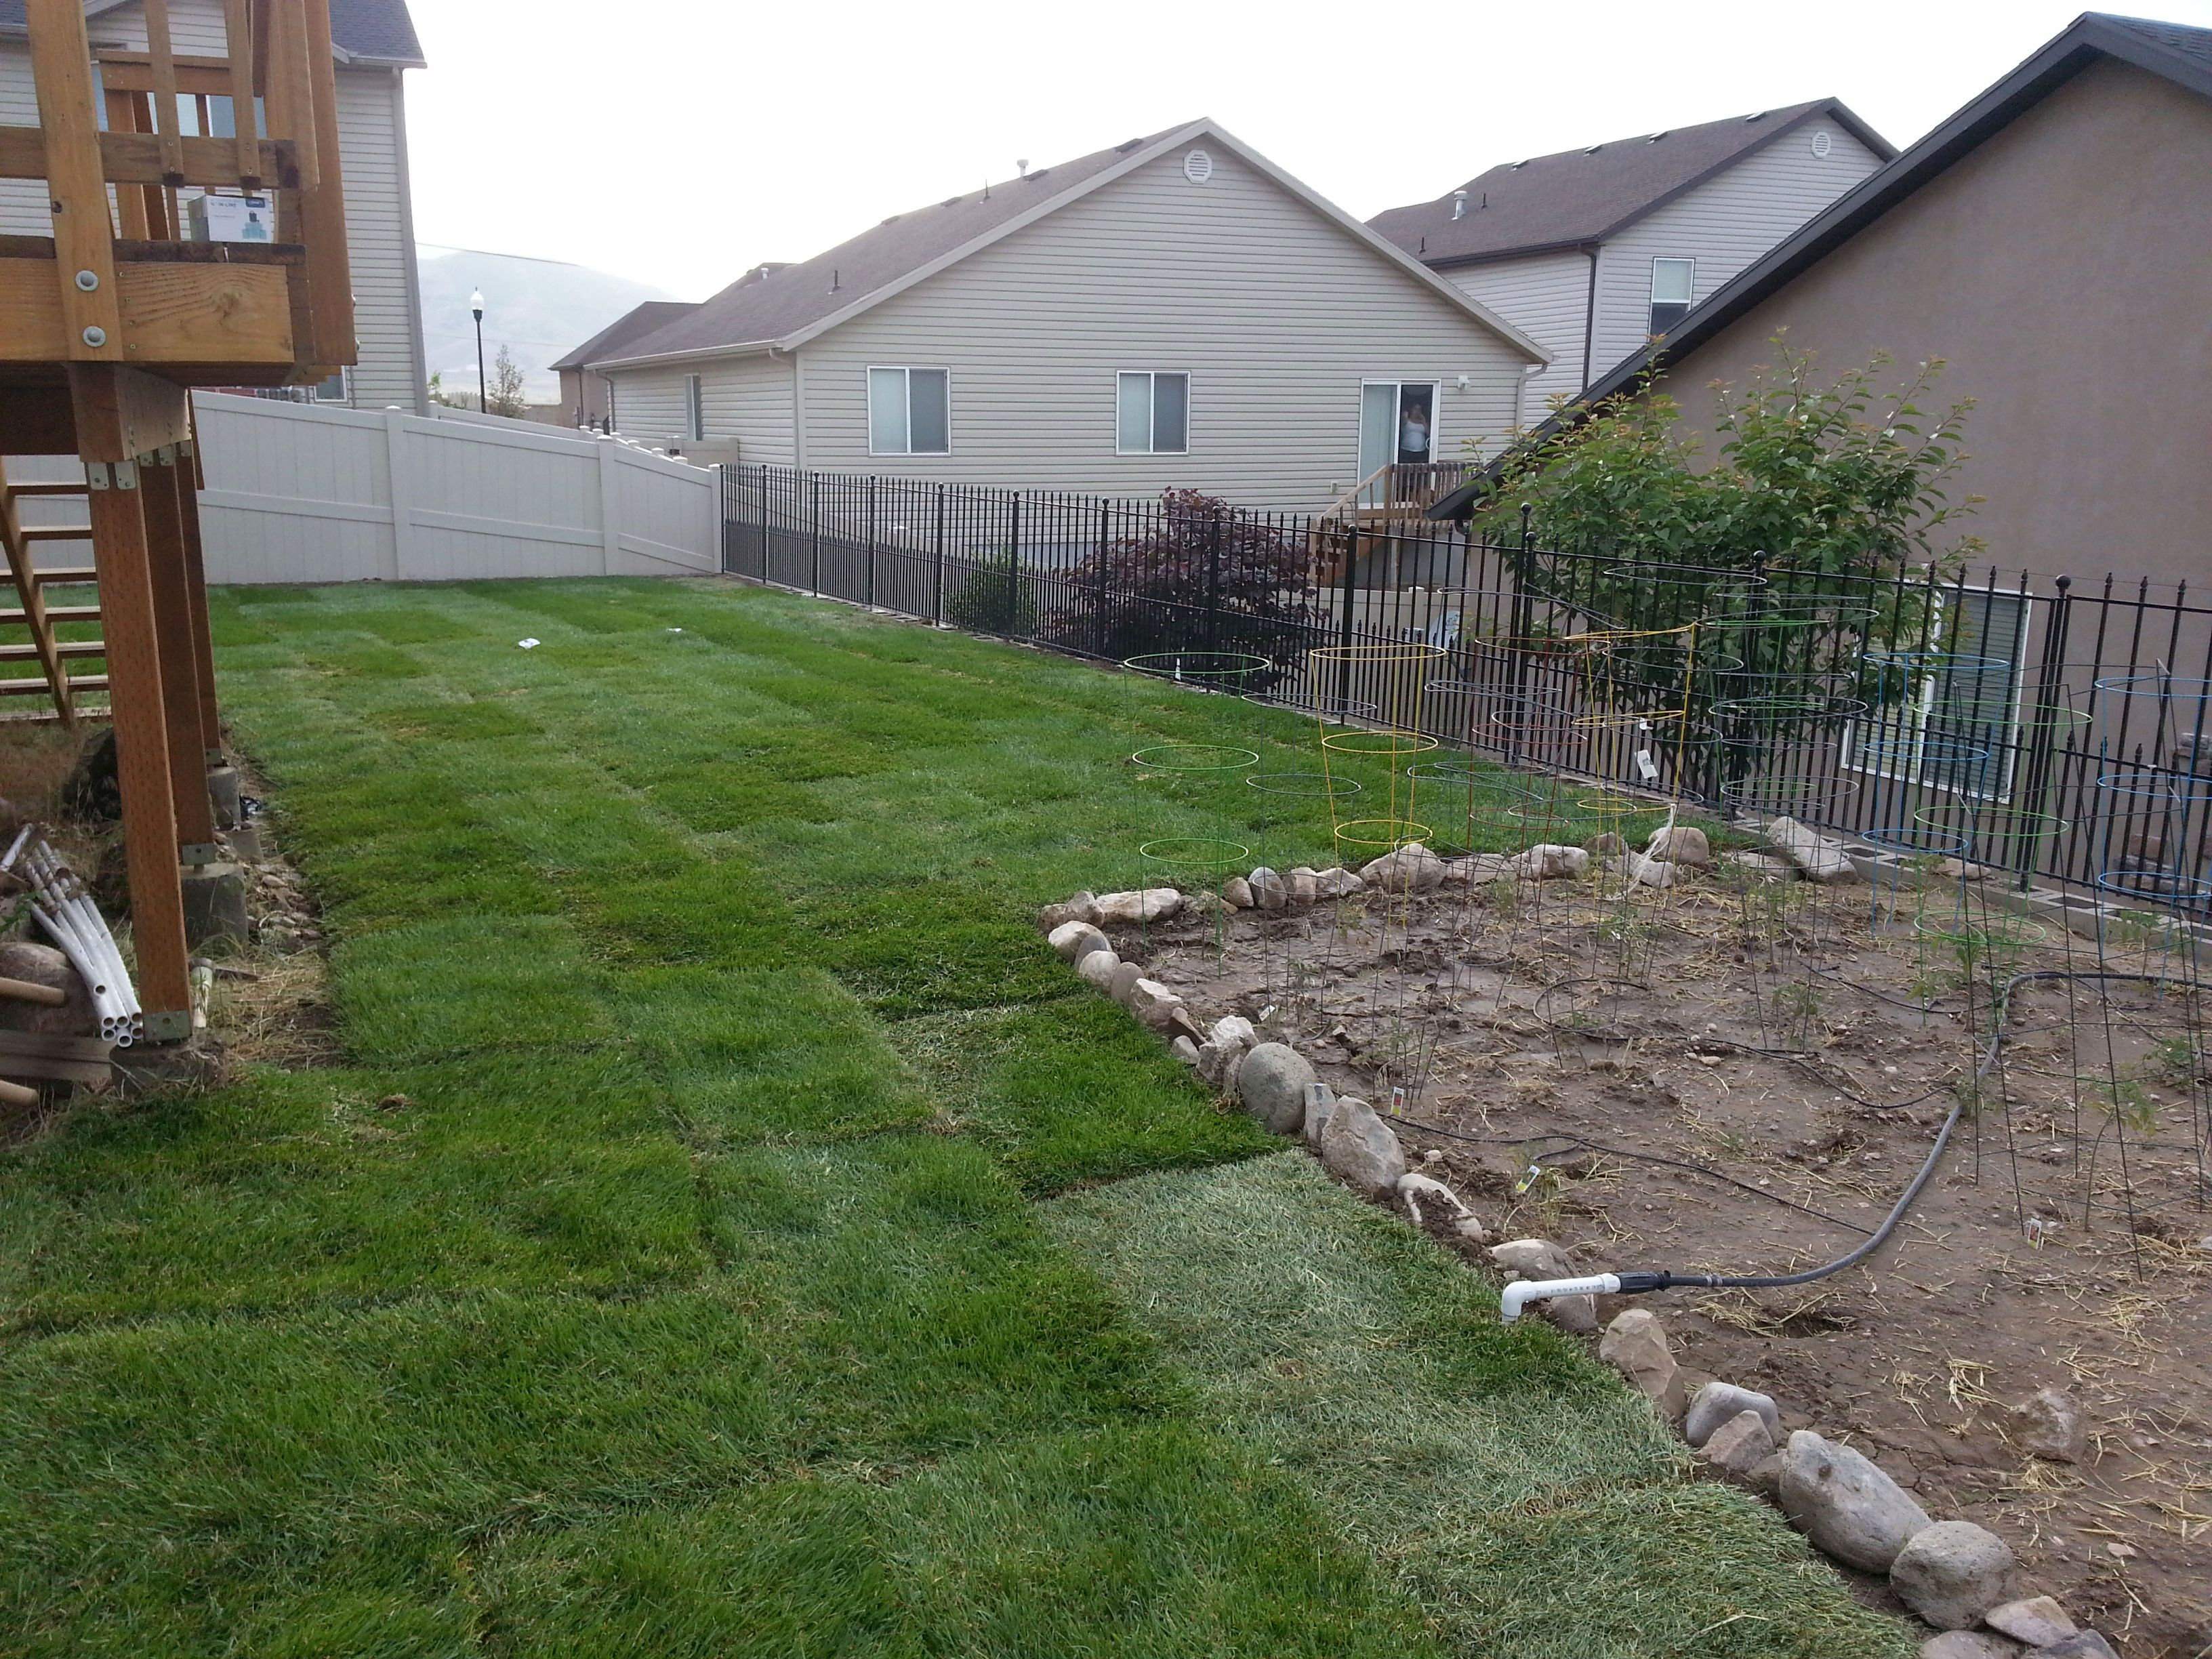 Freshly laid sod - call today for your fresh sod to be delivered!